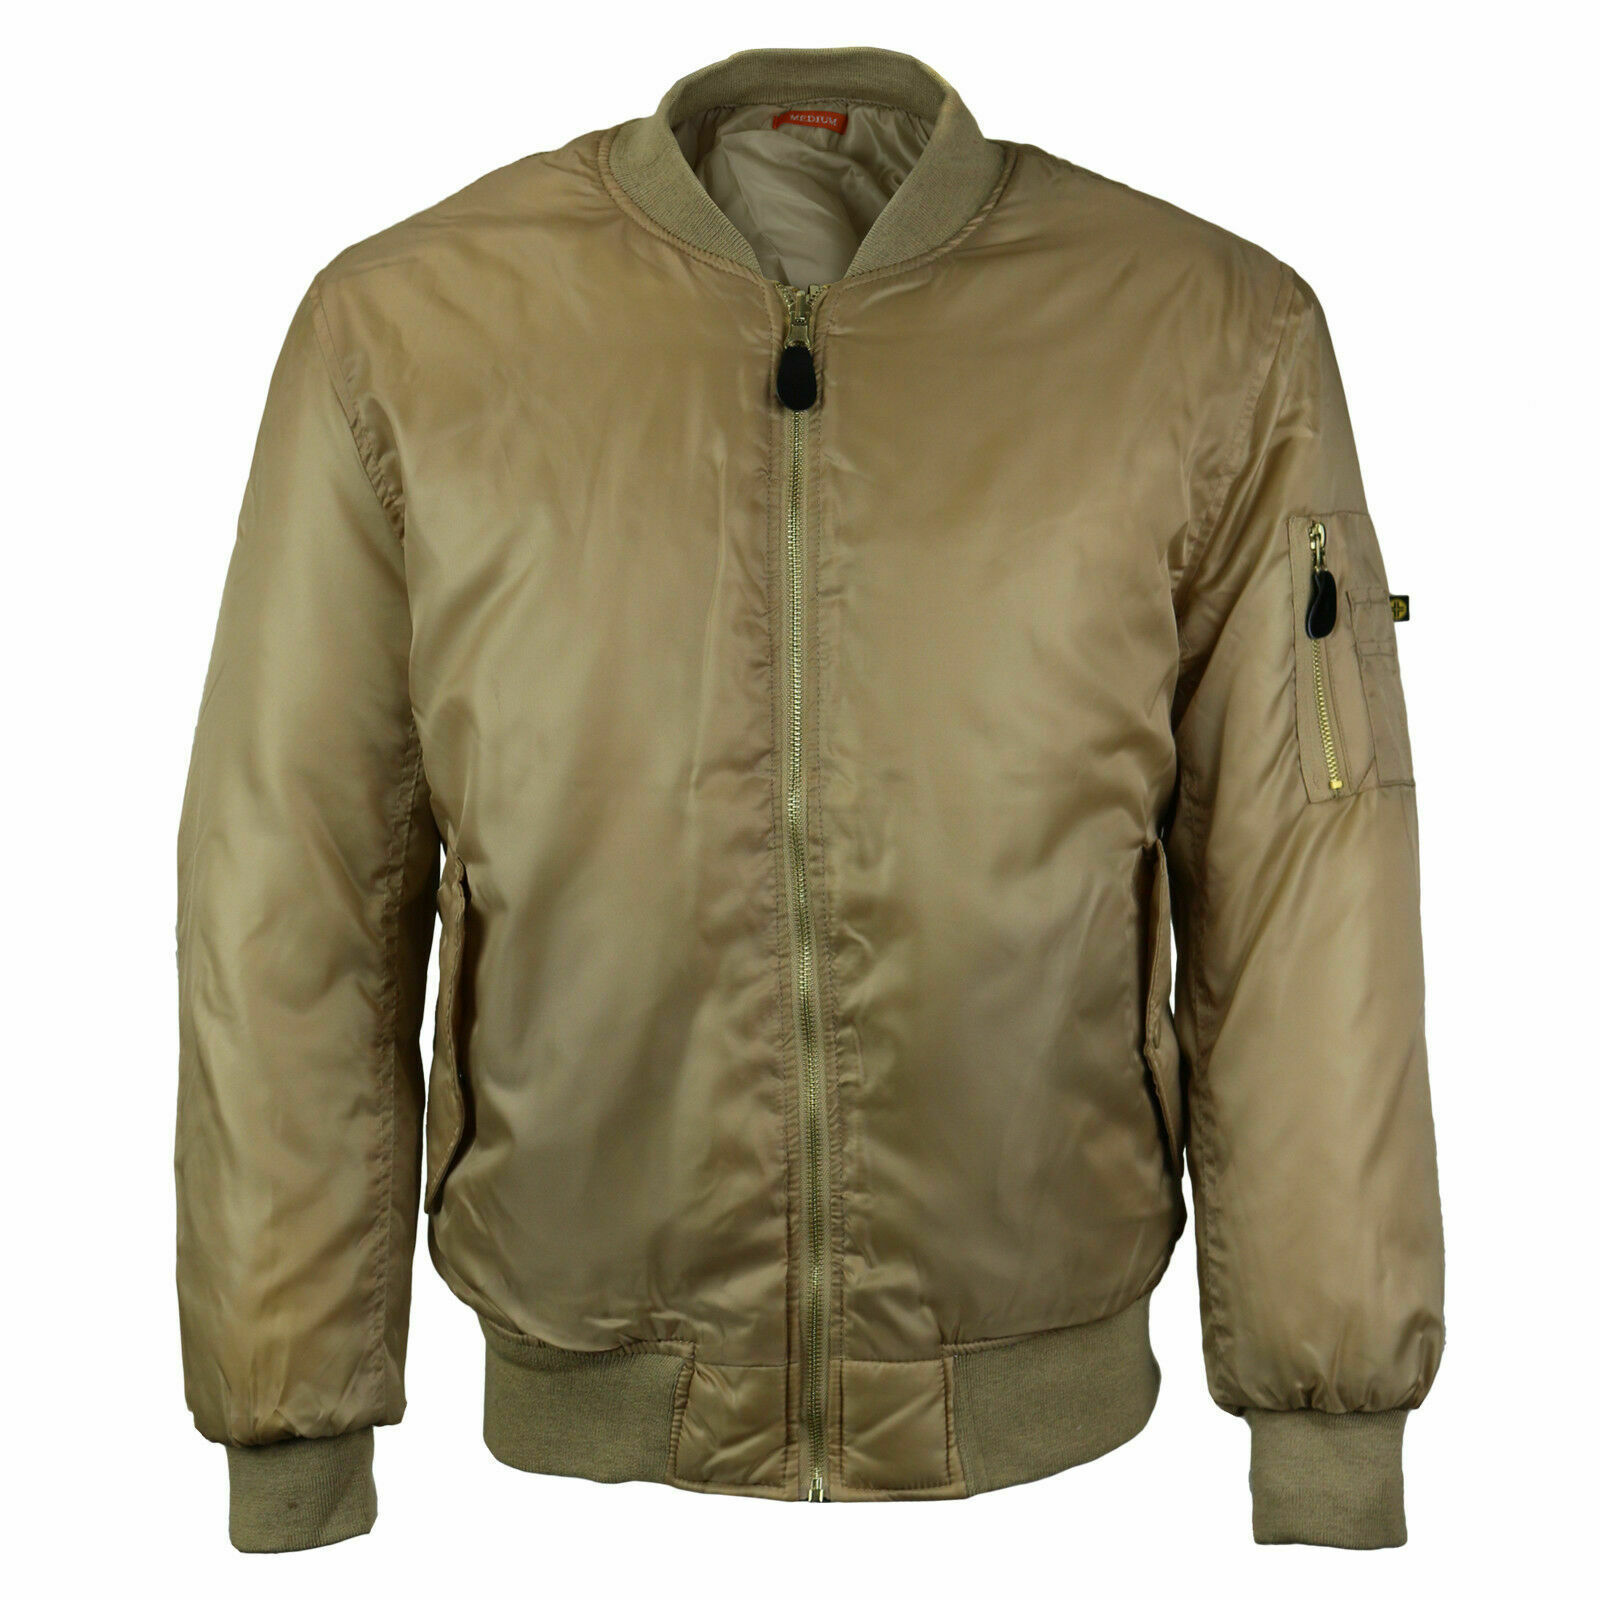 Men's Multi Pocket Water Resistant Padded Zip Up Beige Flight Bomber Jacket - S